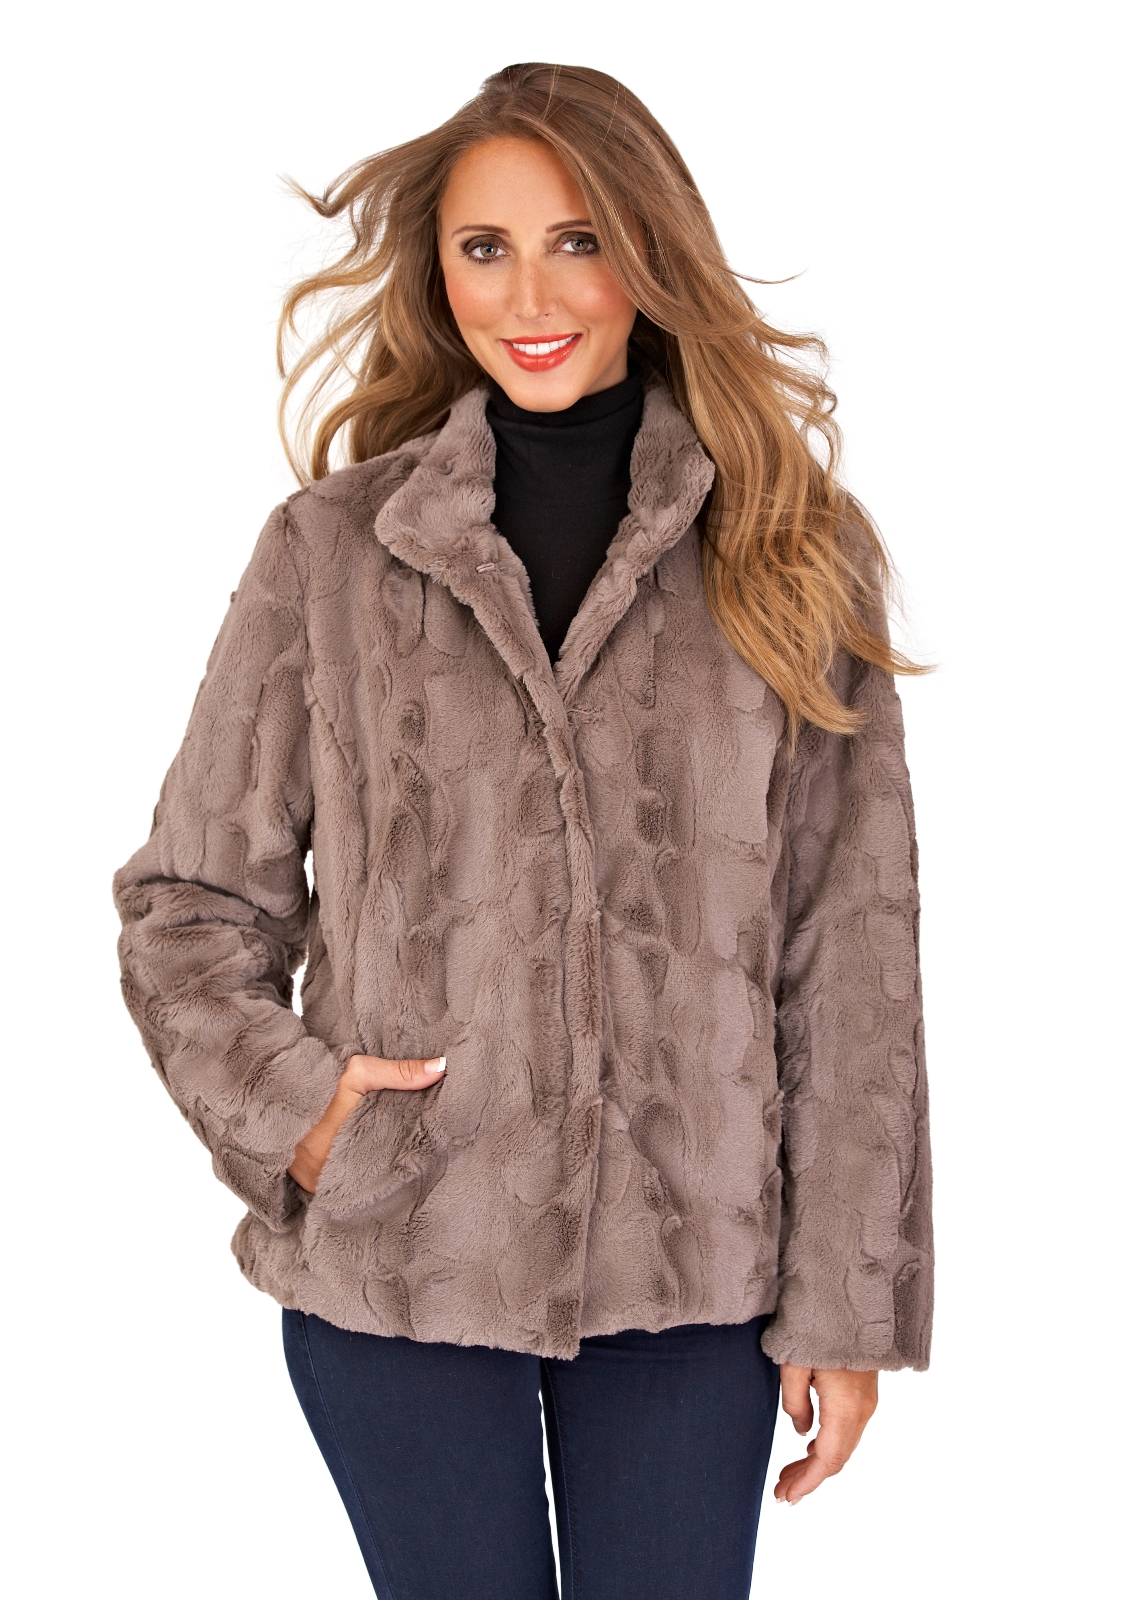 Womens fake fur coats